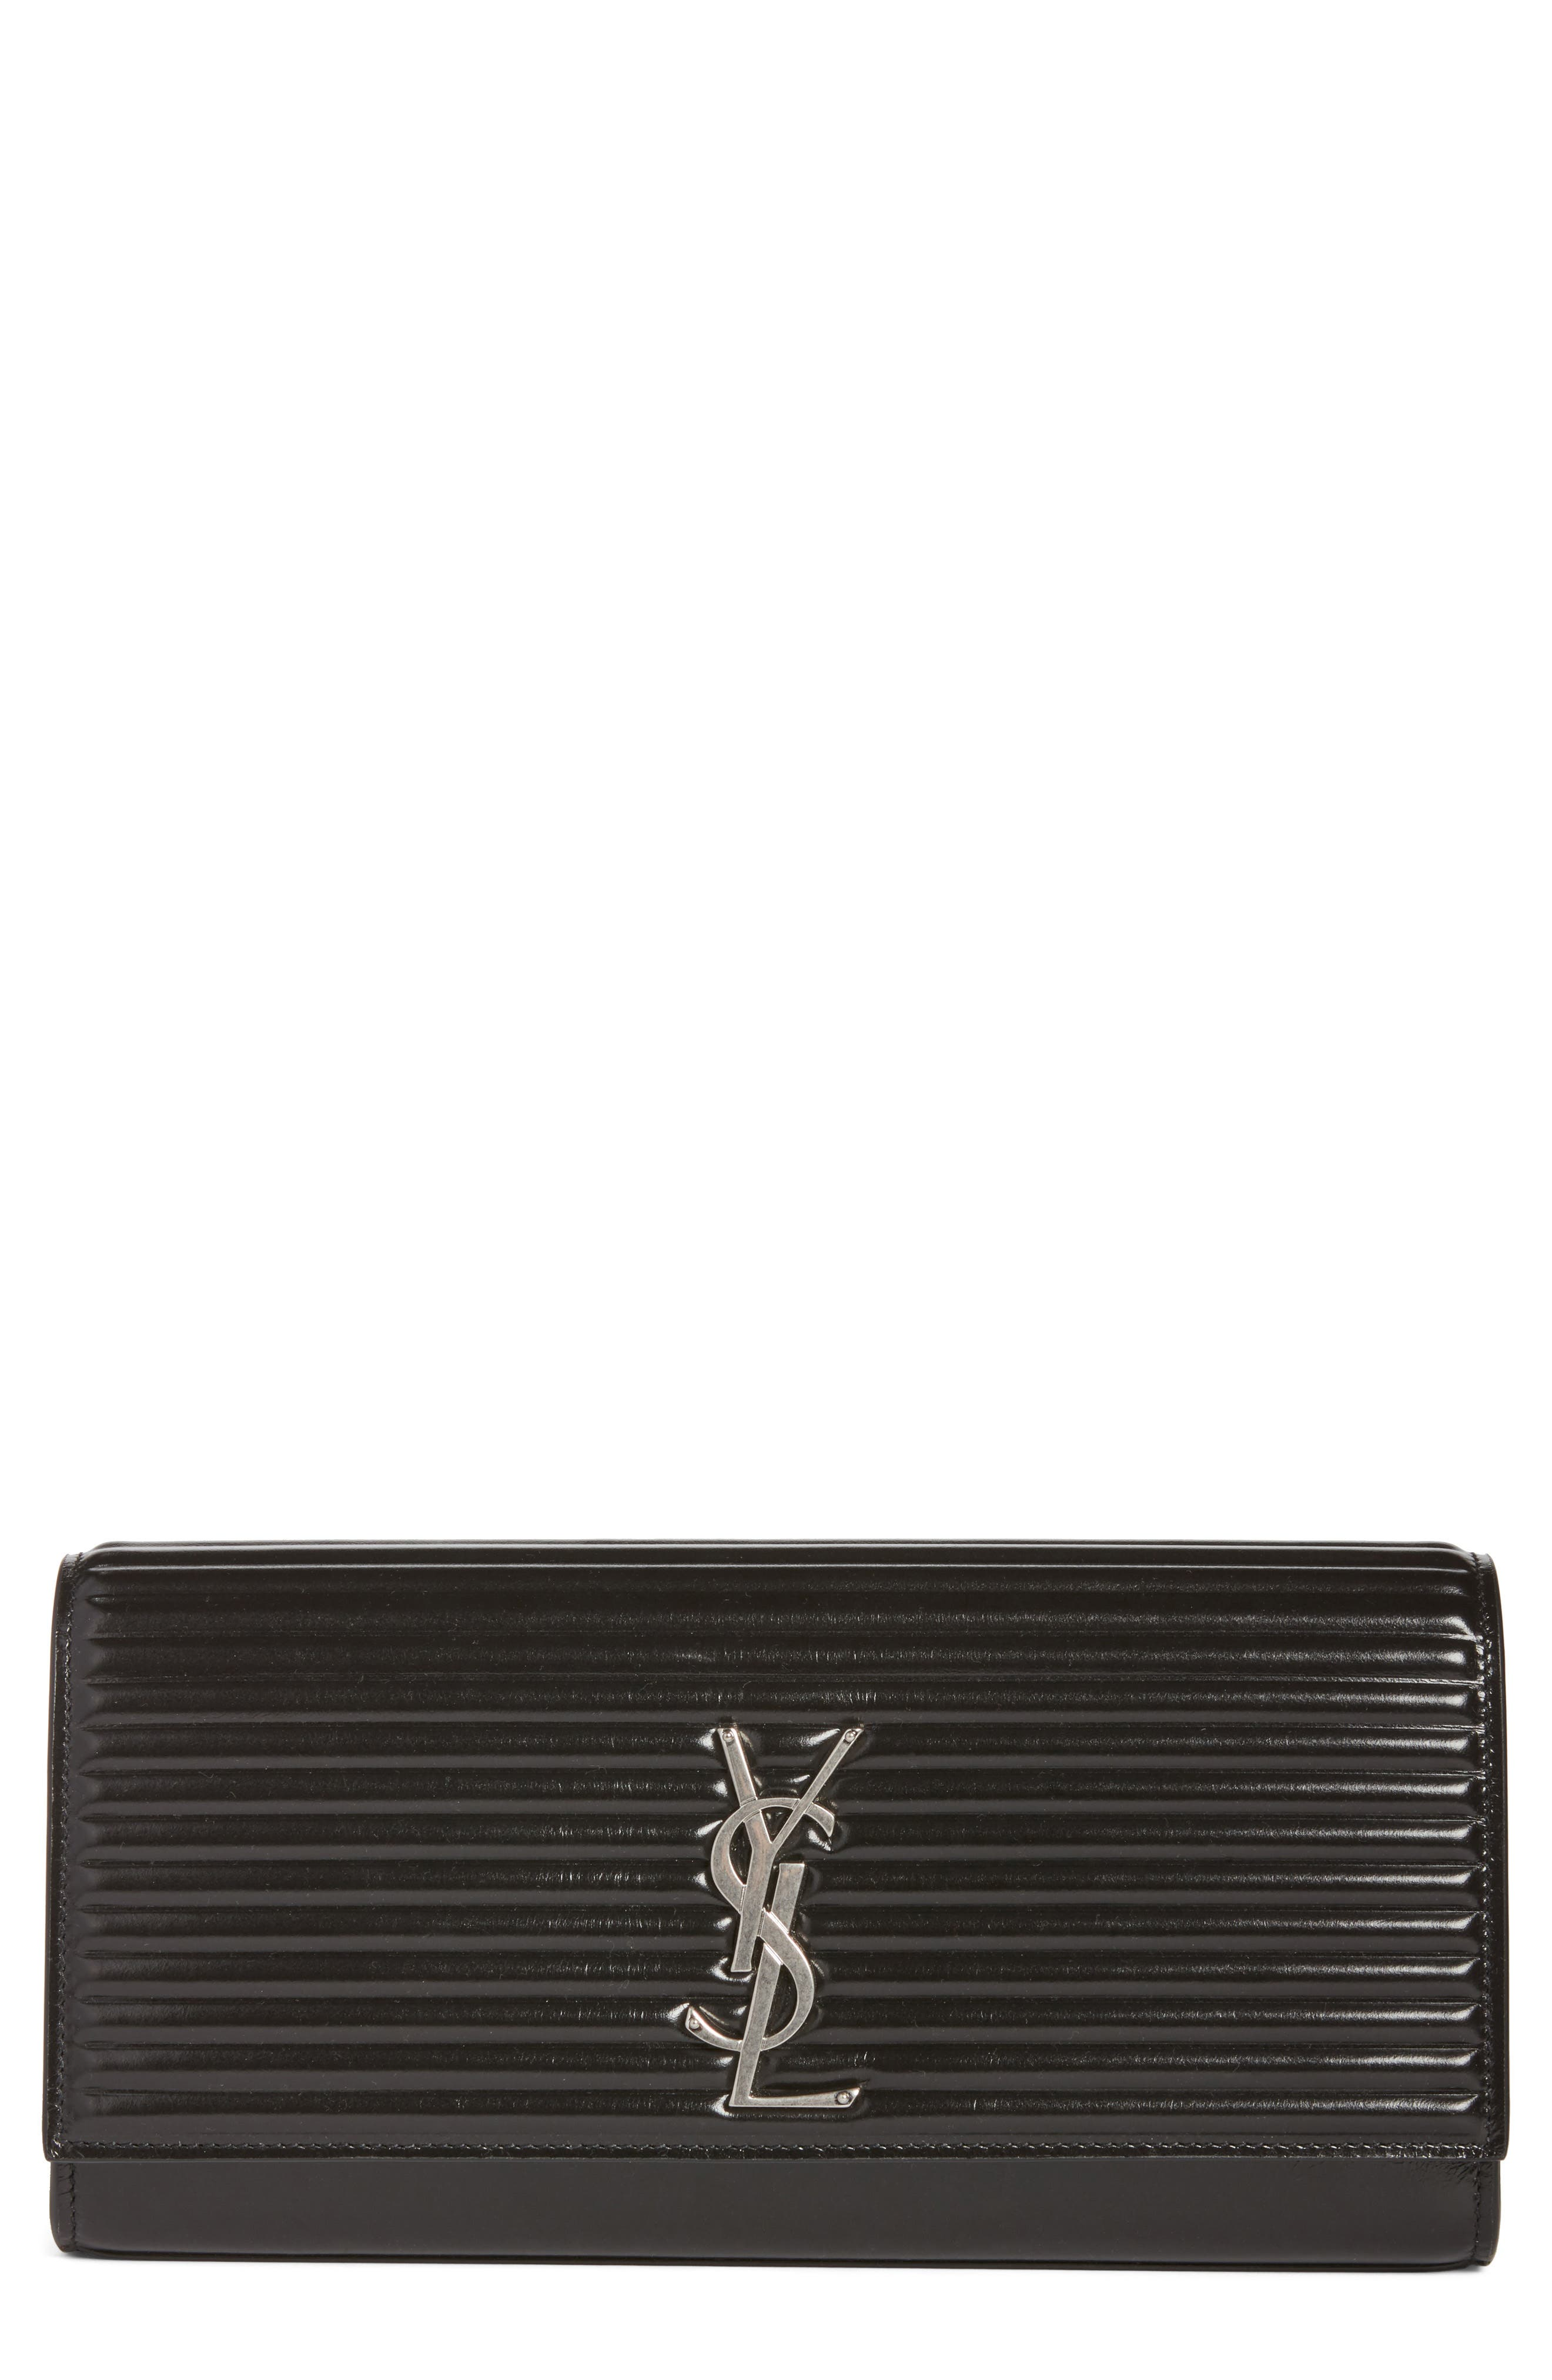 Kate Opium Leather Clutch,                             Main thumbnail 1, color,                             Nero